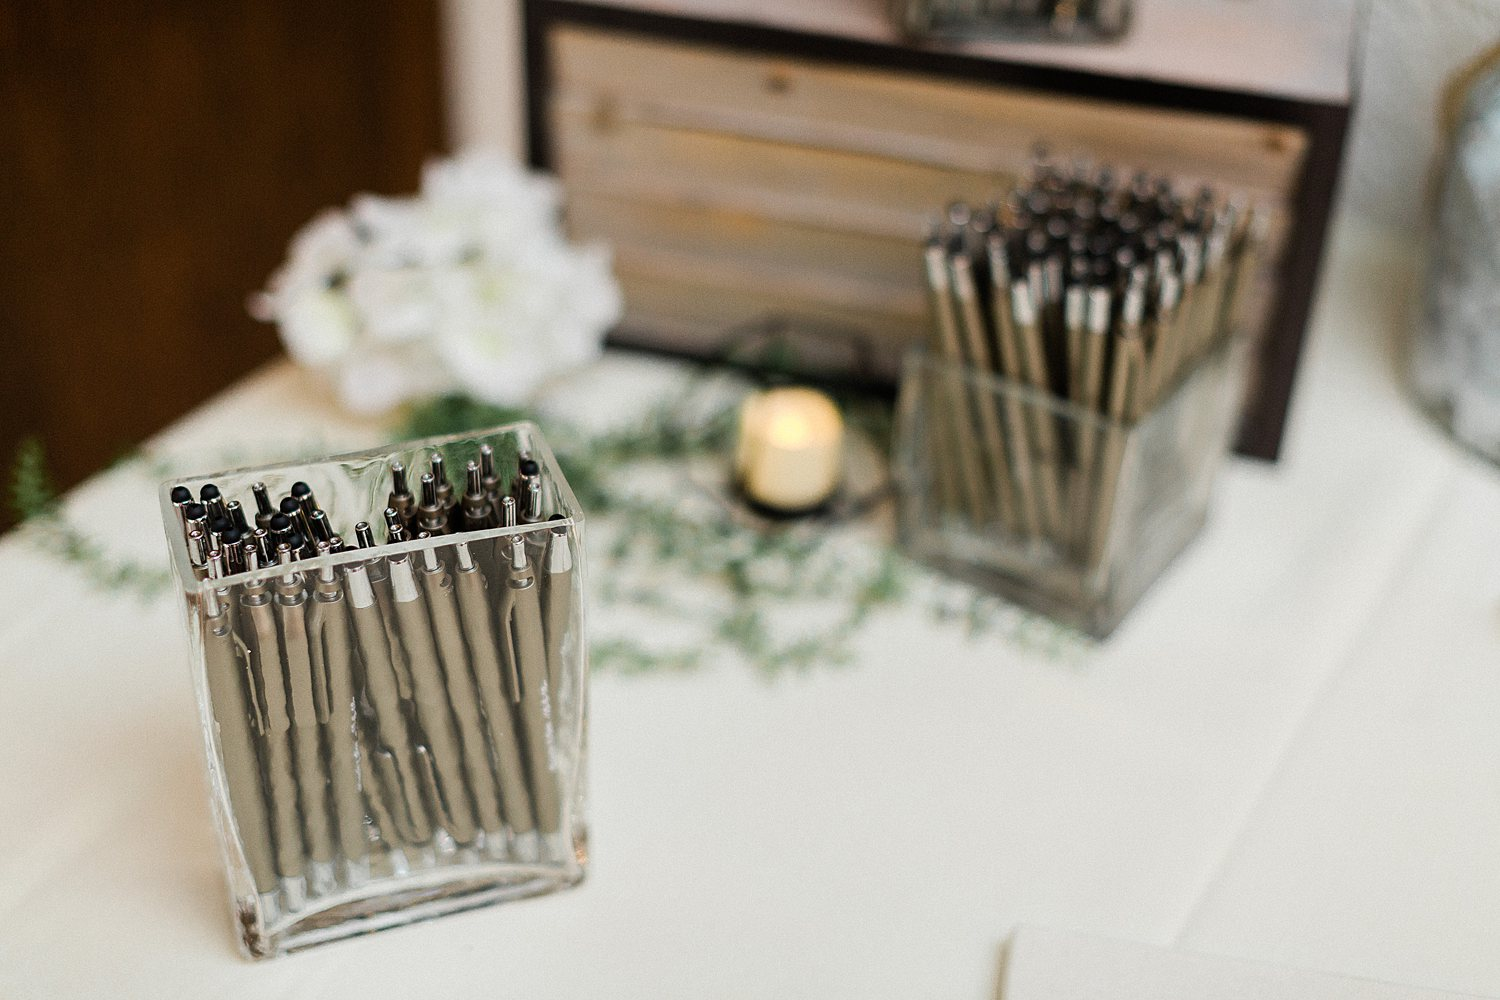 North_Central_Wisconsin_Event_Wedding_Venues_Fall_Weddings_The_Bailiwick_Venue_James-Stokes-Photography070.jpg